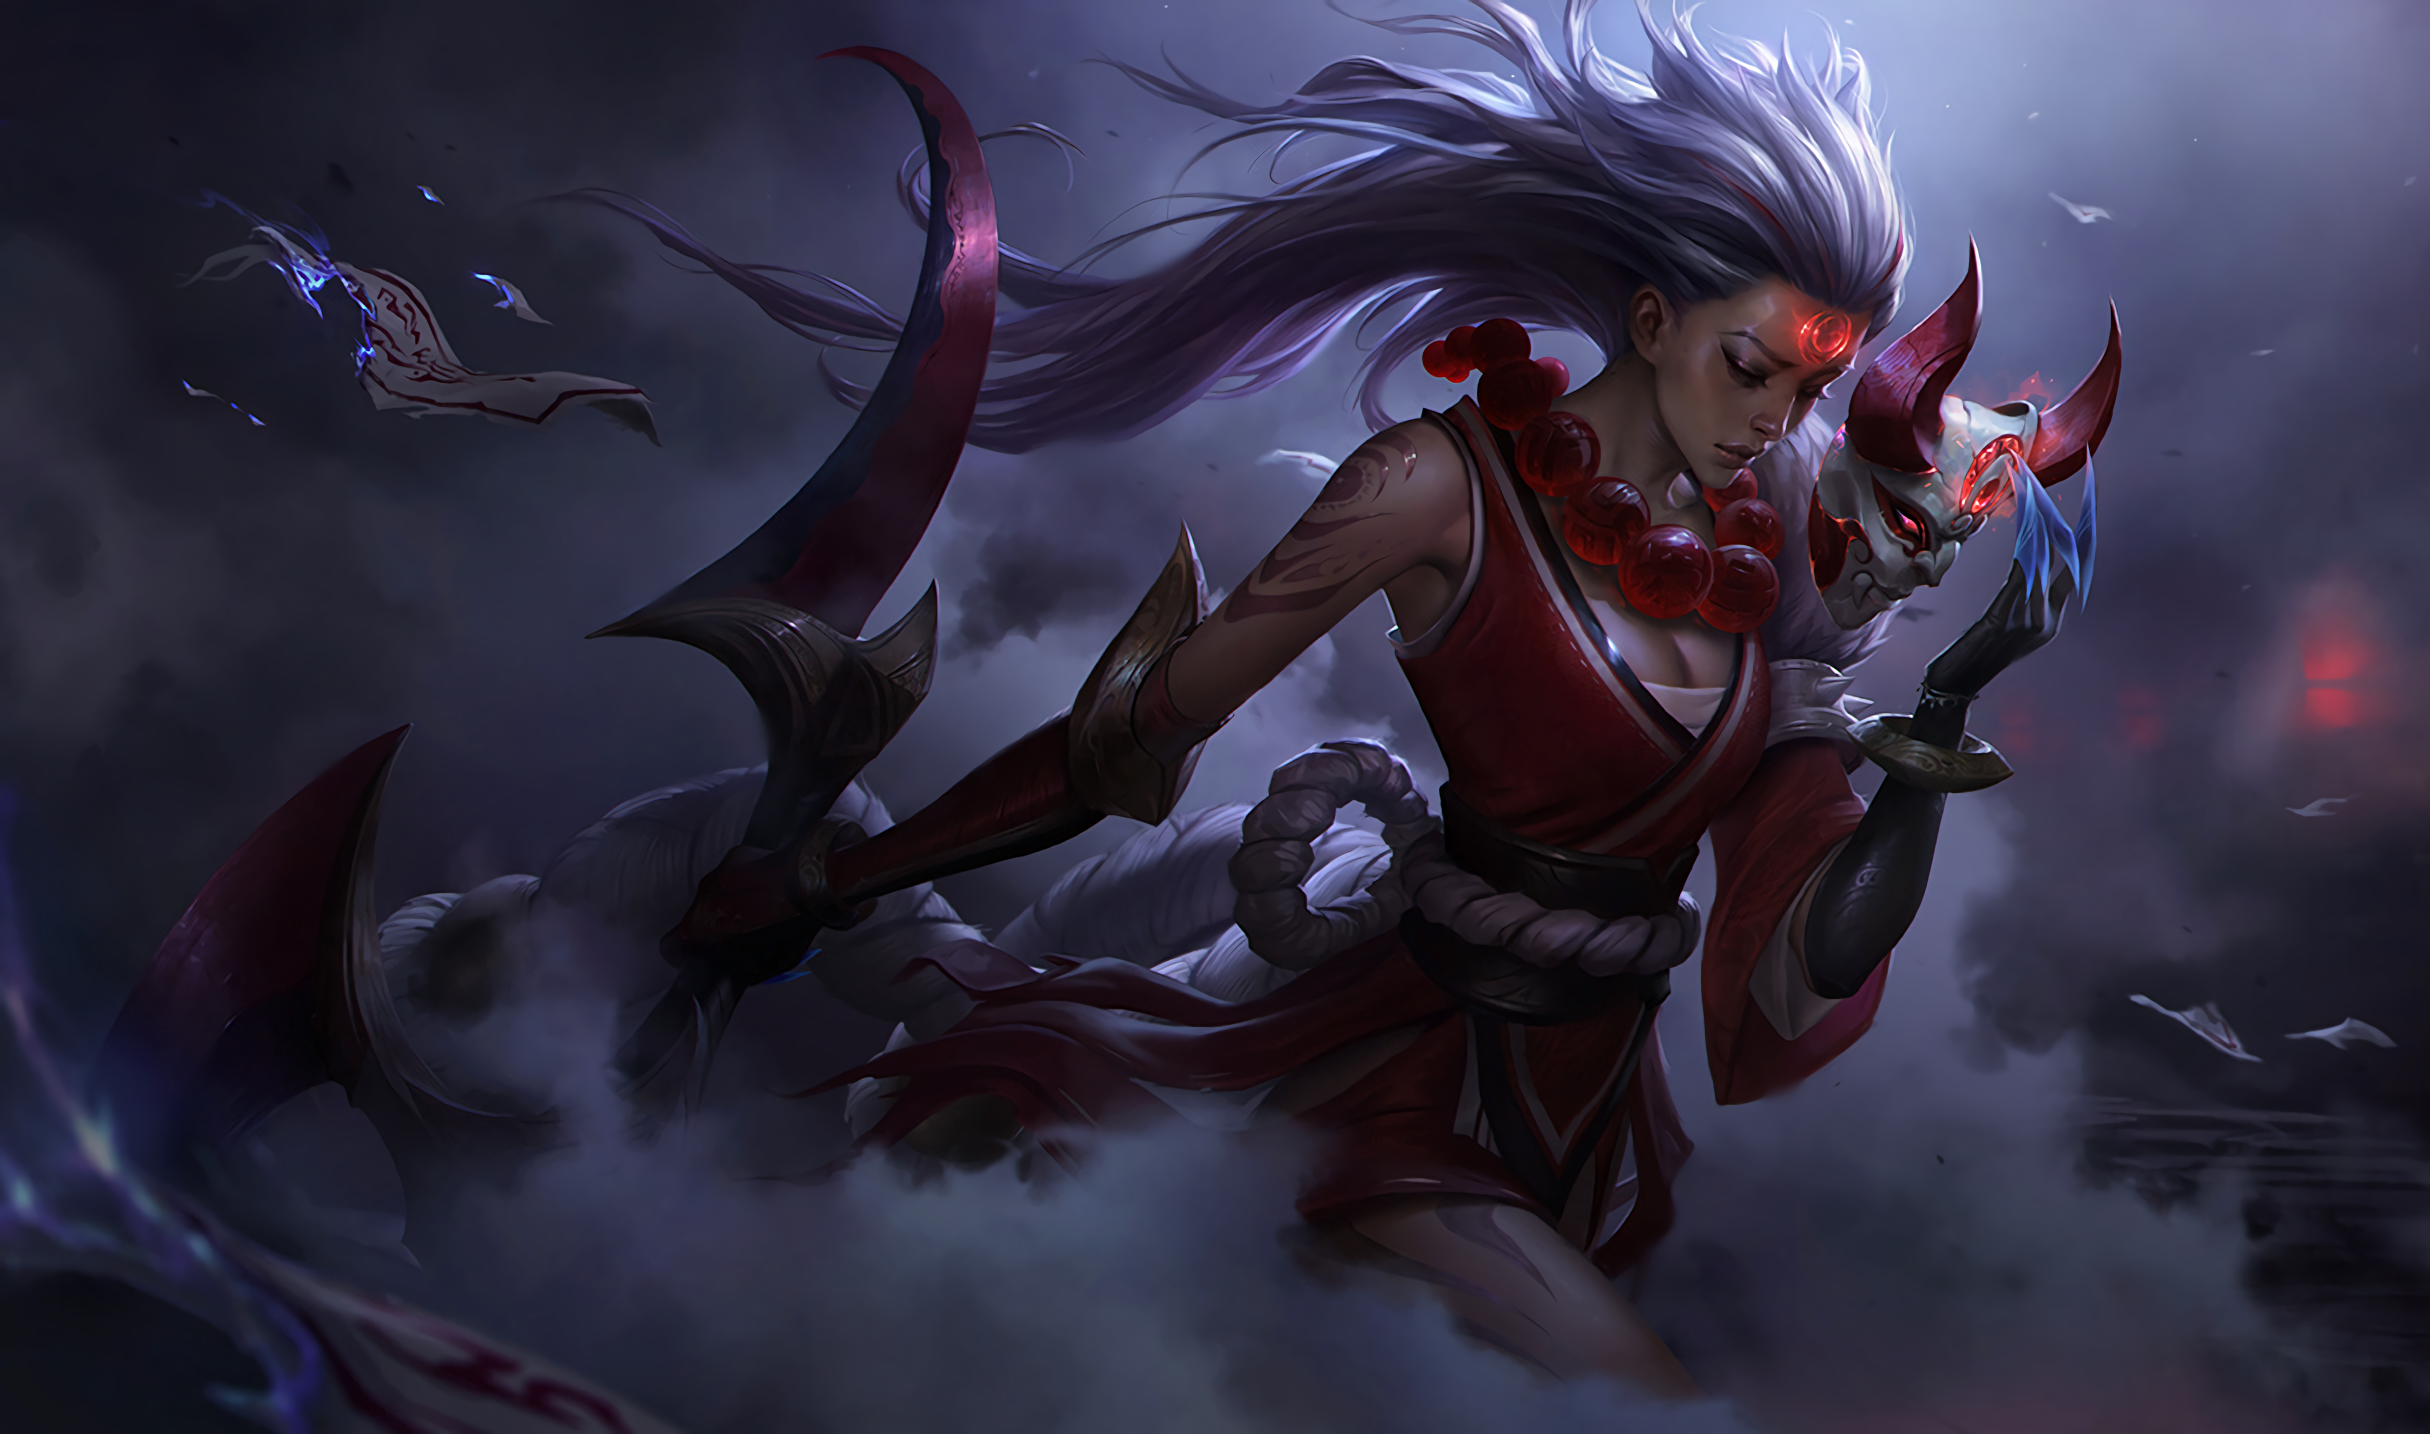 Upscaled Blood Moon Diana Splash art for your Desktop Background 2430x1434